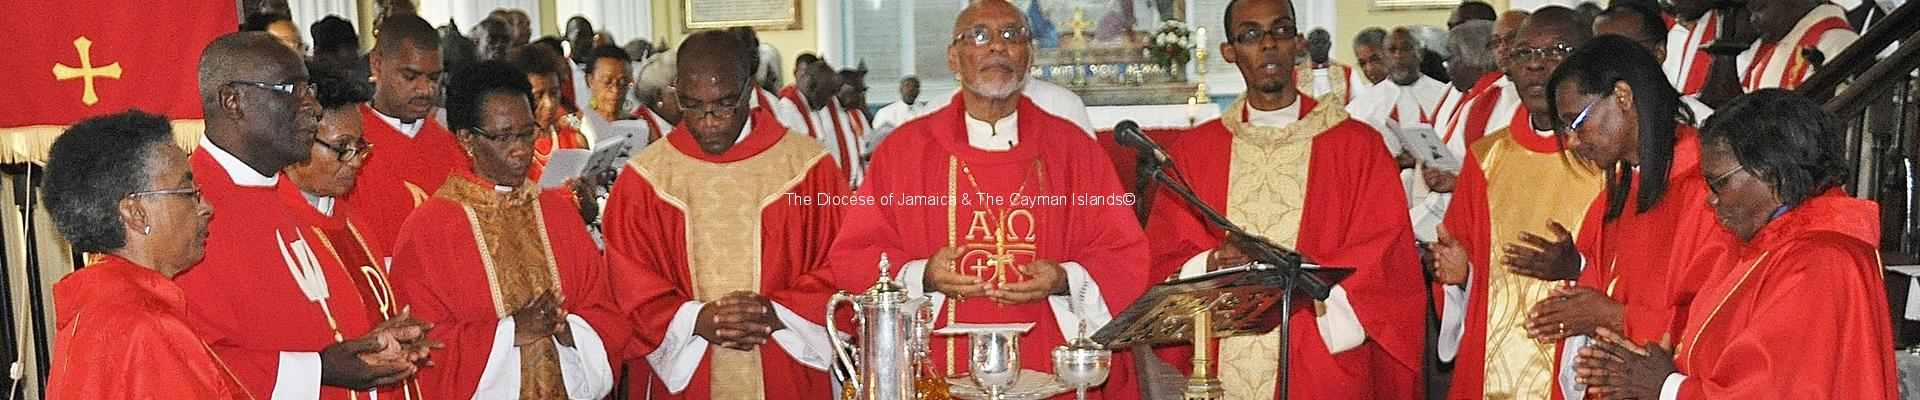 Synod Charge delivered by the Rt. Rev. Dr. Howard Gregory, Bishop of Jamaica and The Cayman Islands, at the Opening Service of the 145th Synod of the Church in Jamaica and the Cayman Islands (Anglican), held in the St. James' Parish Church, on Tuesday April 7, 2015